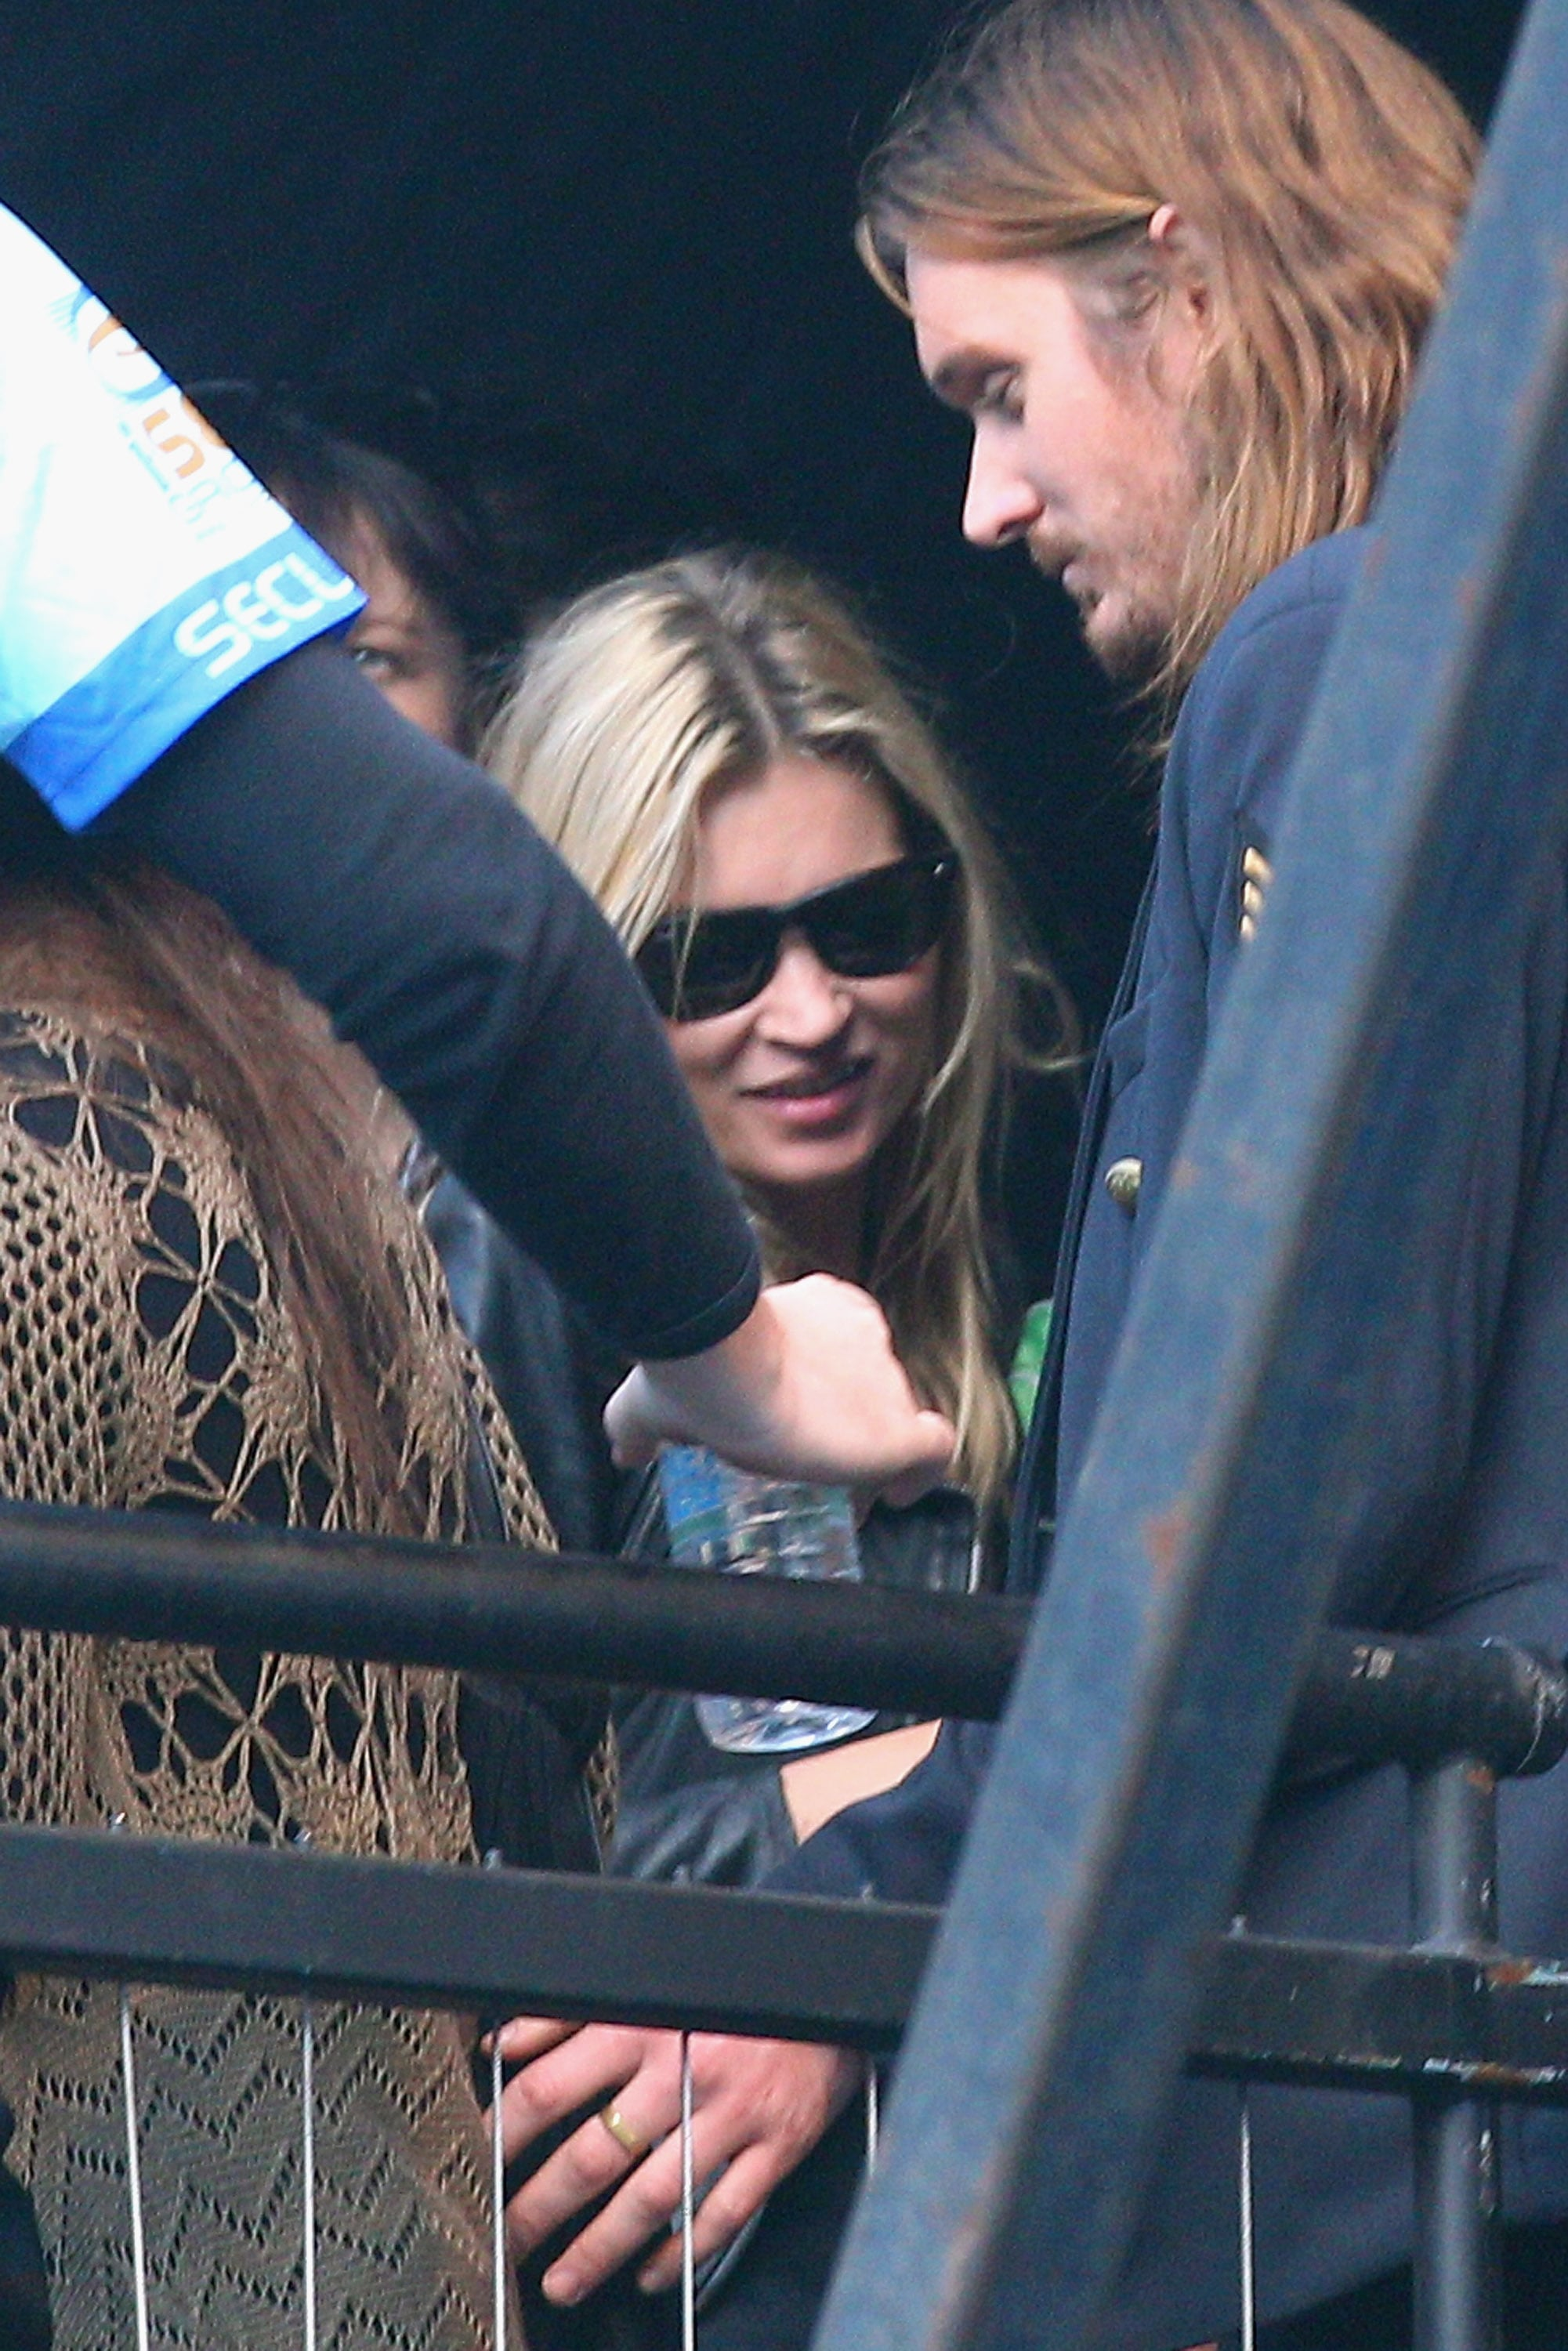 Kate Moss hangs backstage at Splendour in the Grass.